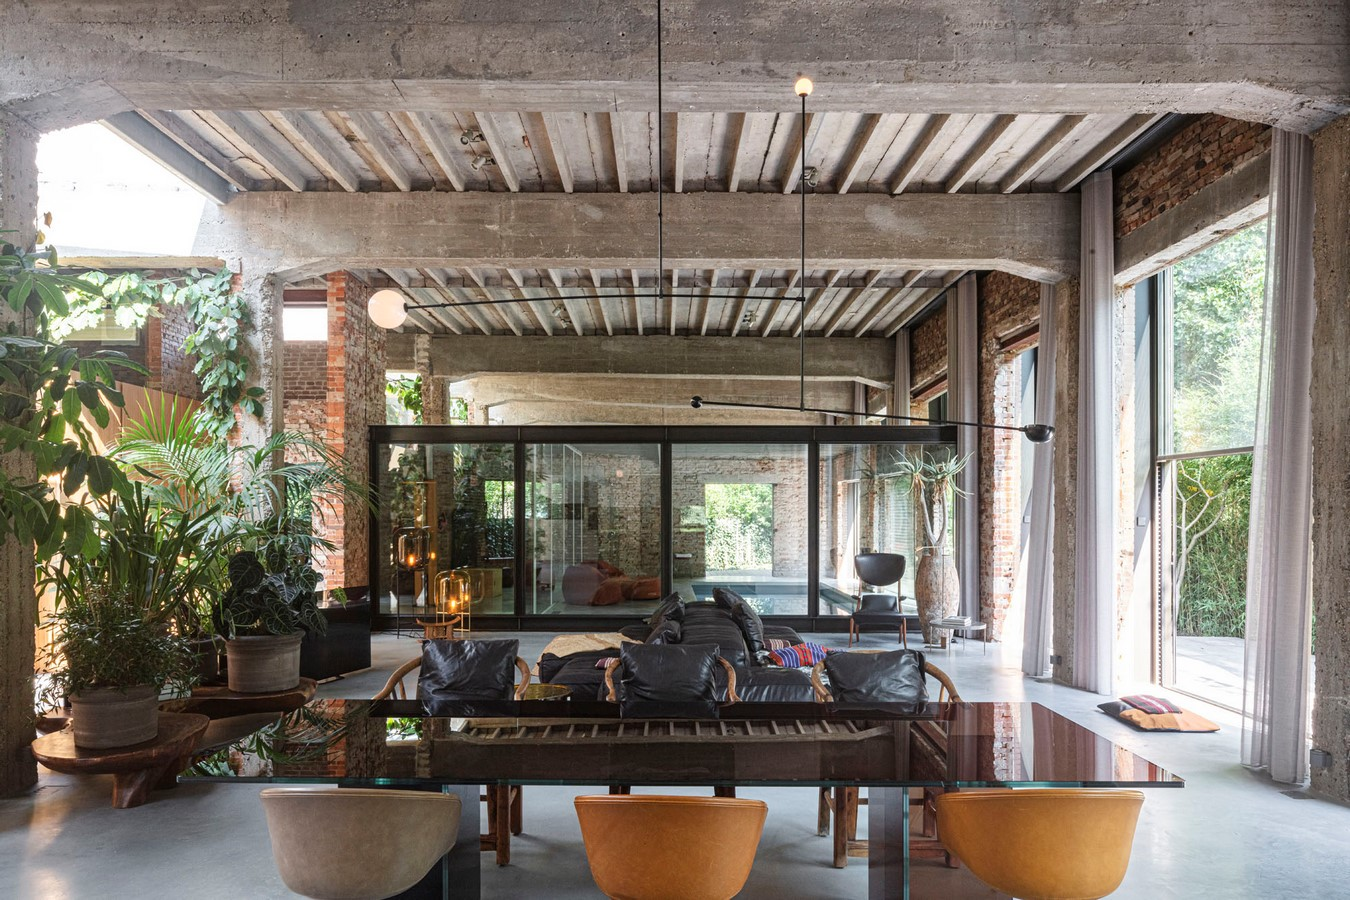 Abandoned 1940s Sports Building converted into New Villa With Naked Brick Walls by MASA Architects - Sheet9